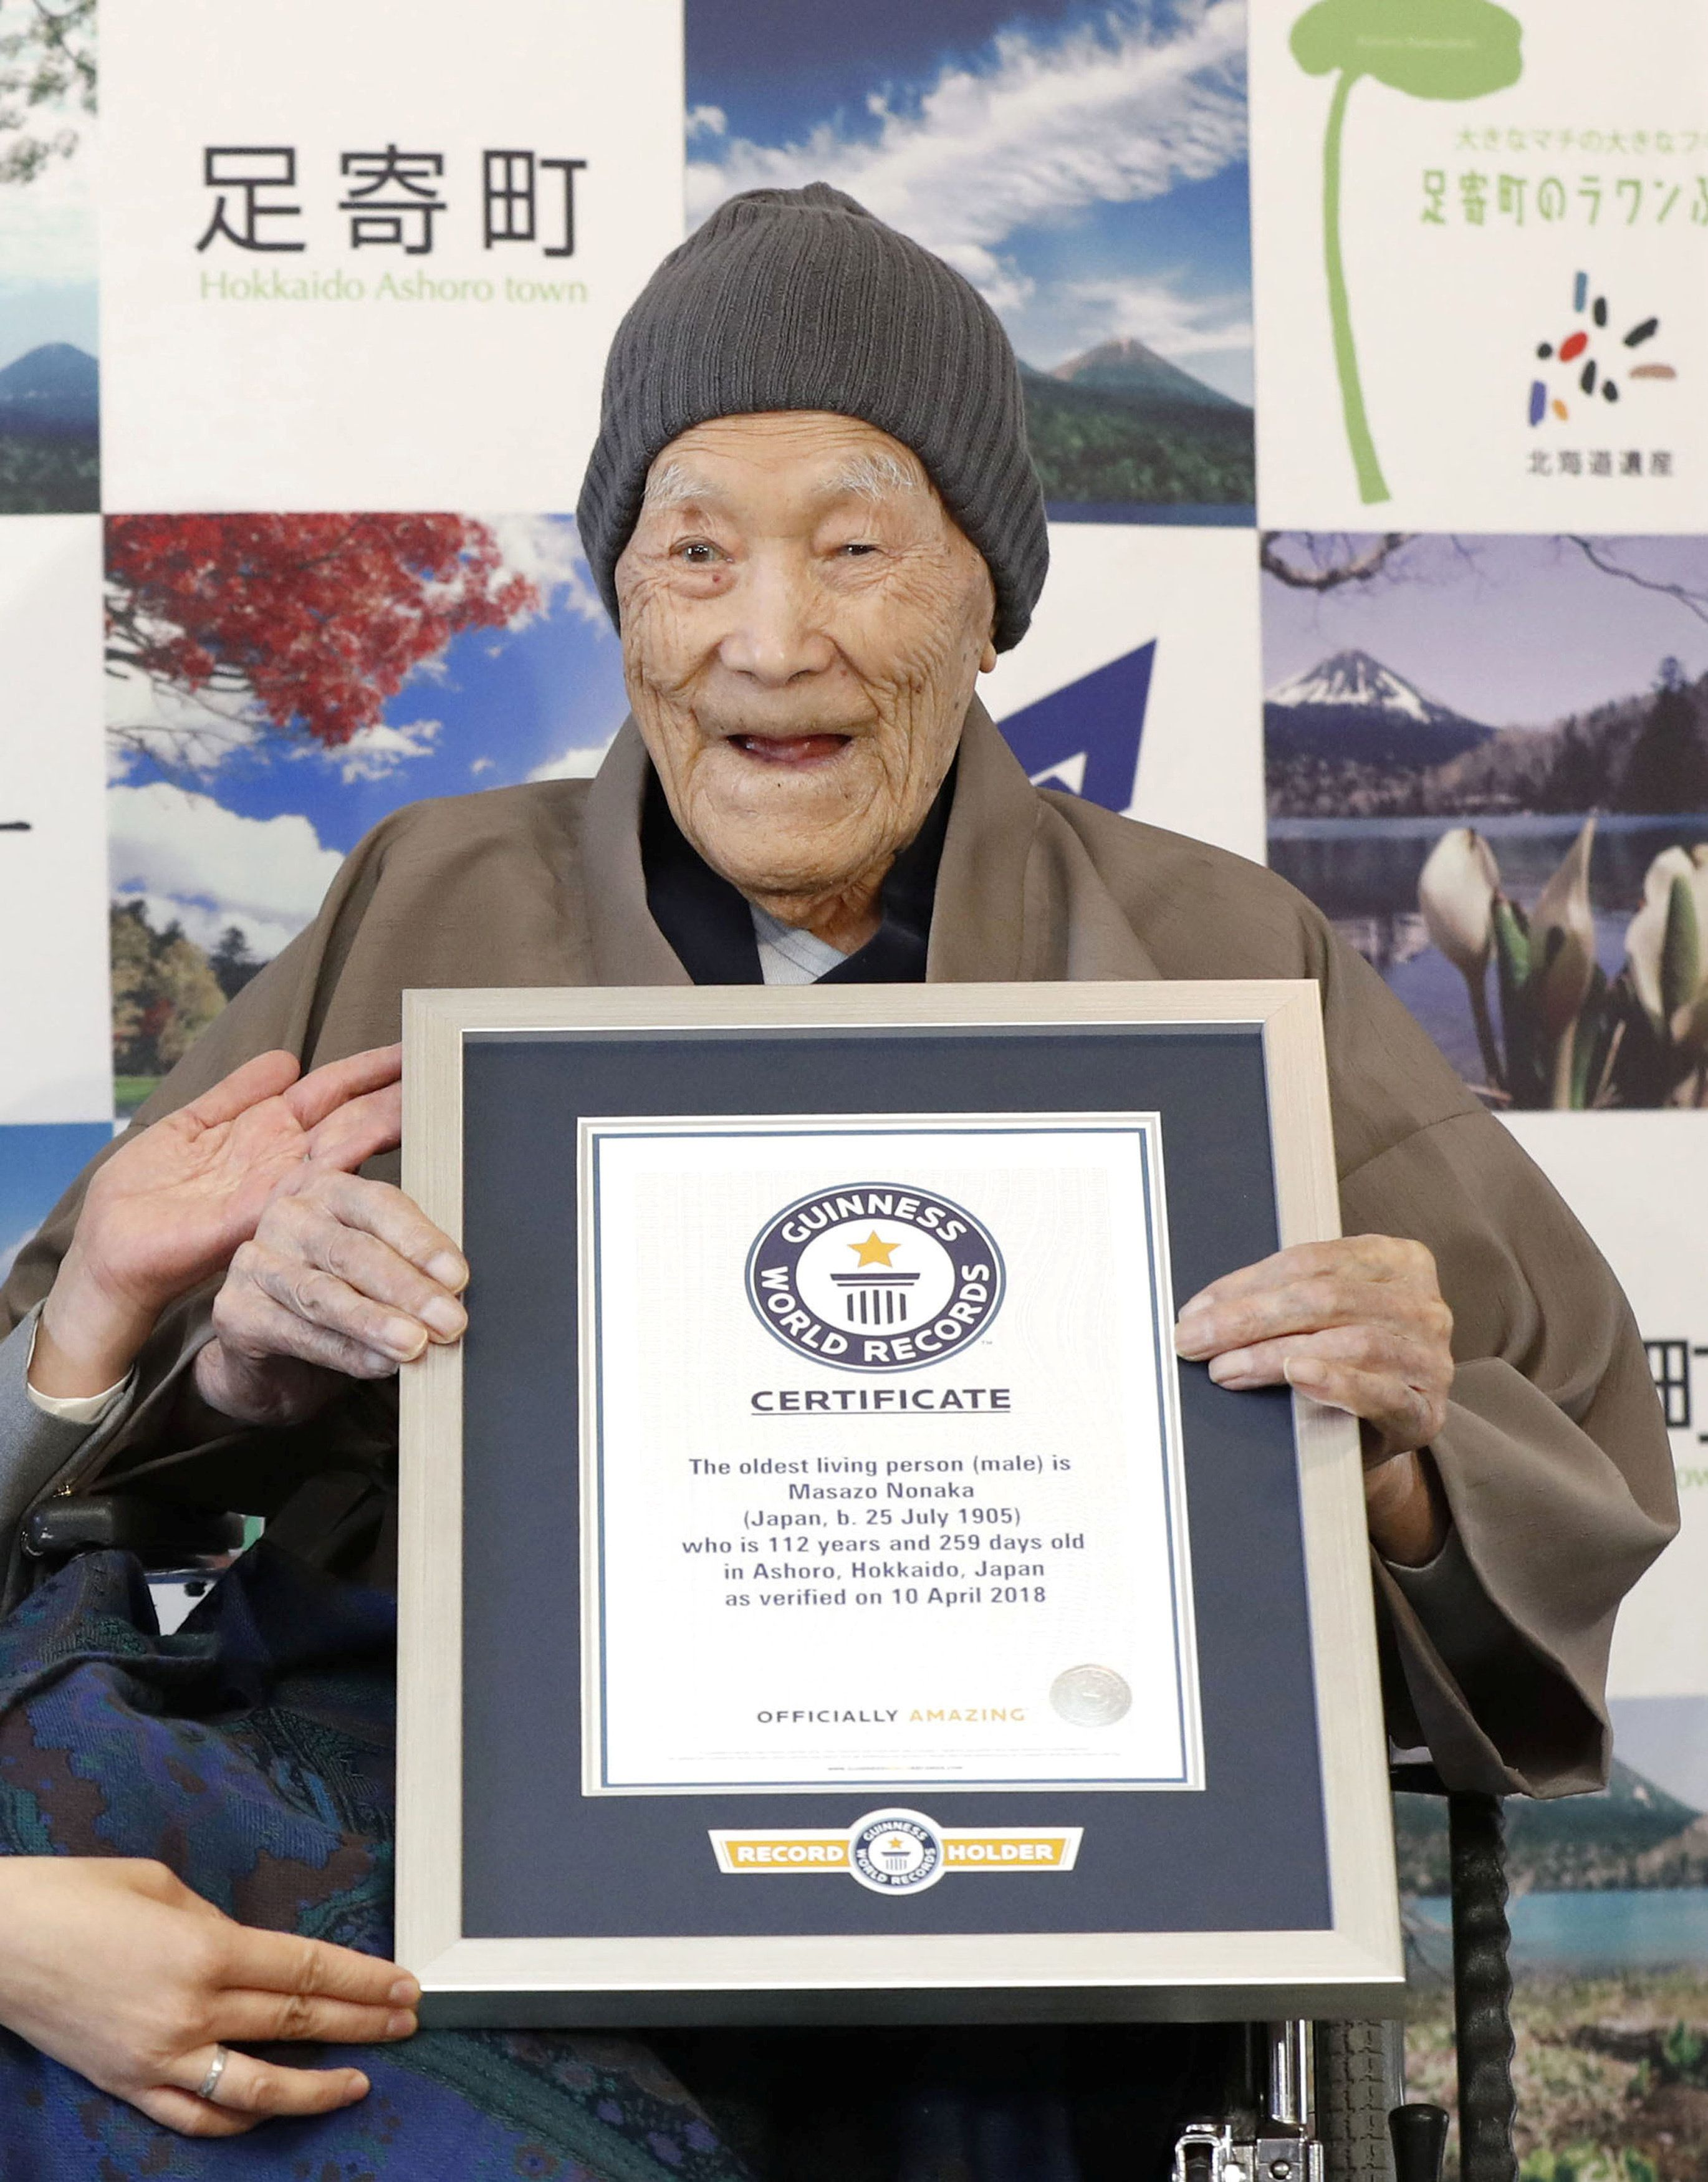 112-Year-Old Japanese Man Is World's Oldest Living